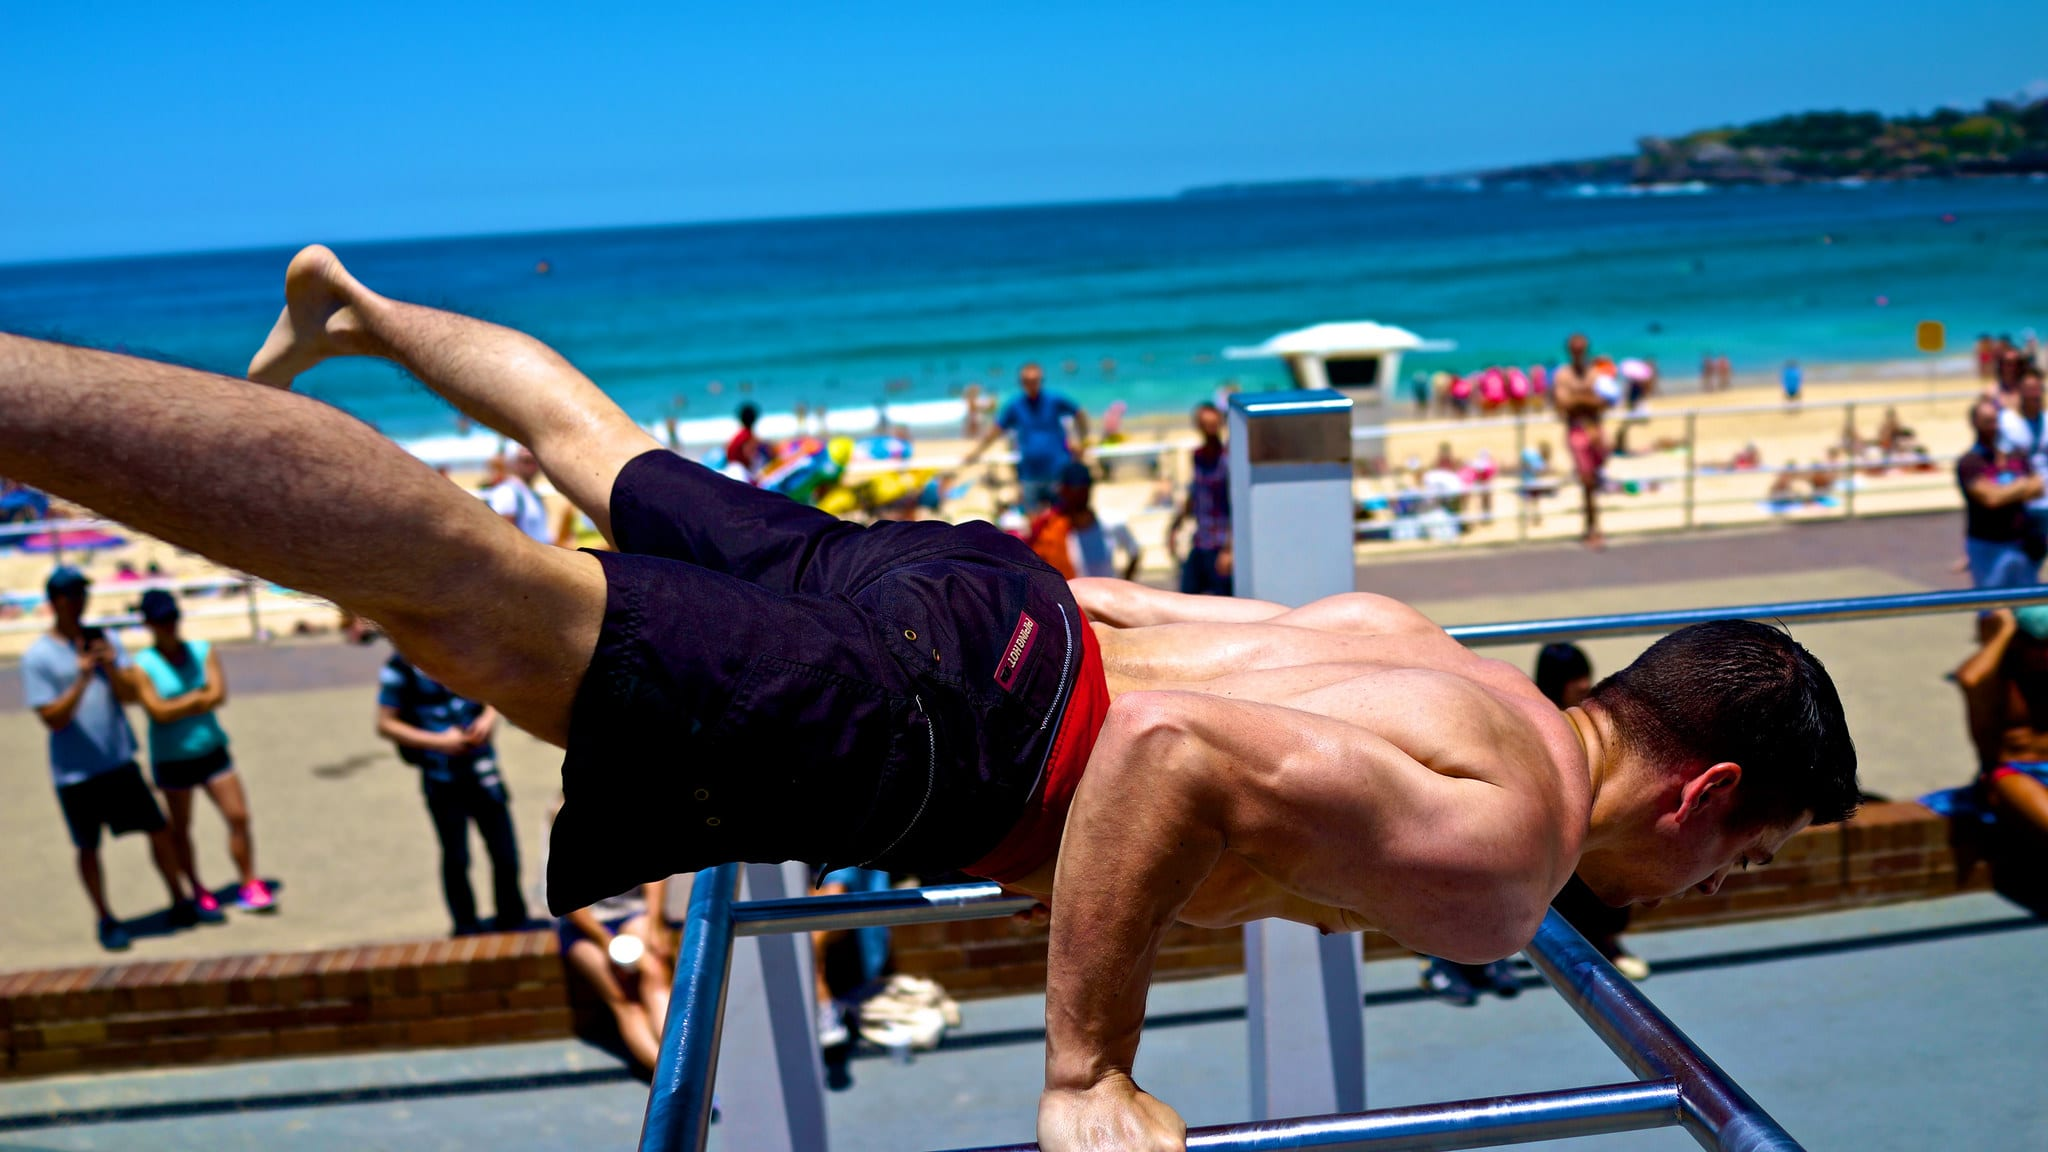 Calisthenics The Ancient Greek Workout For A Shredded Body